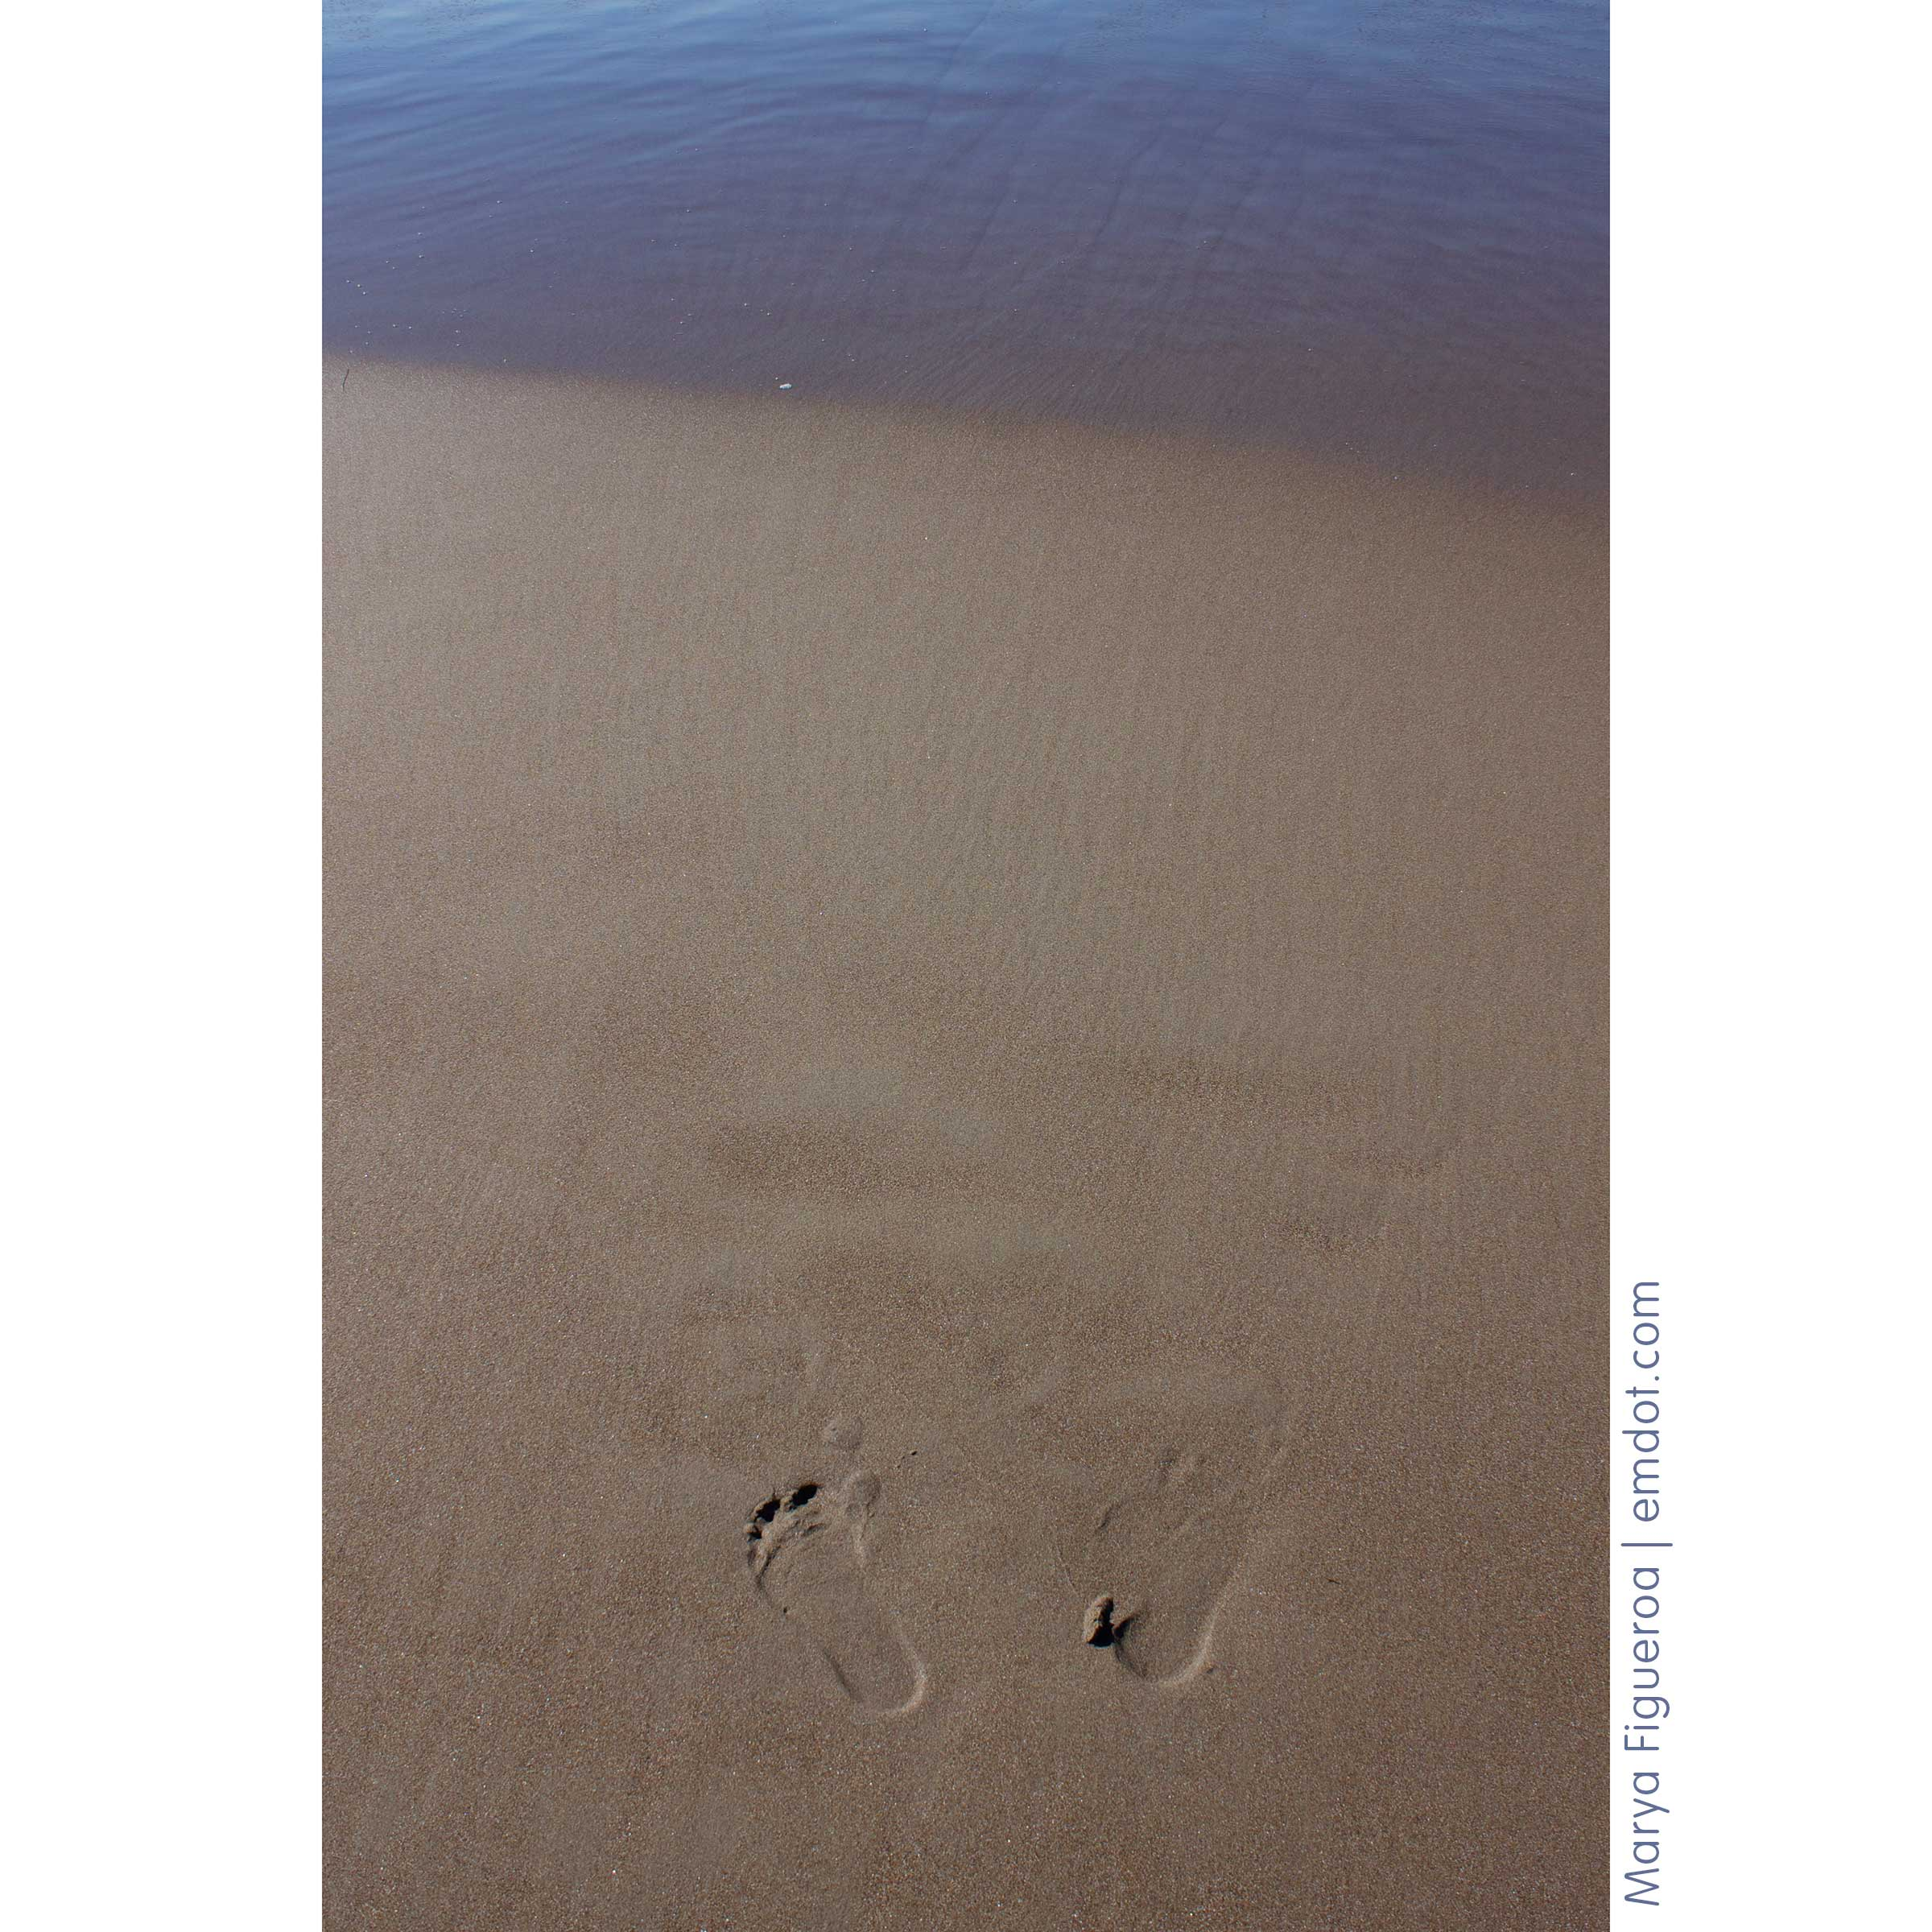 my foot prints in the sand